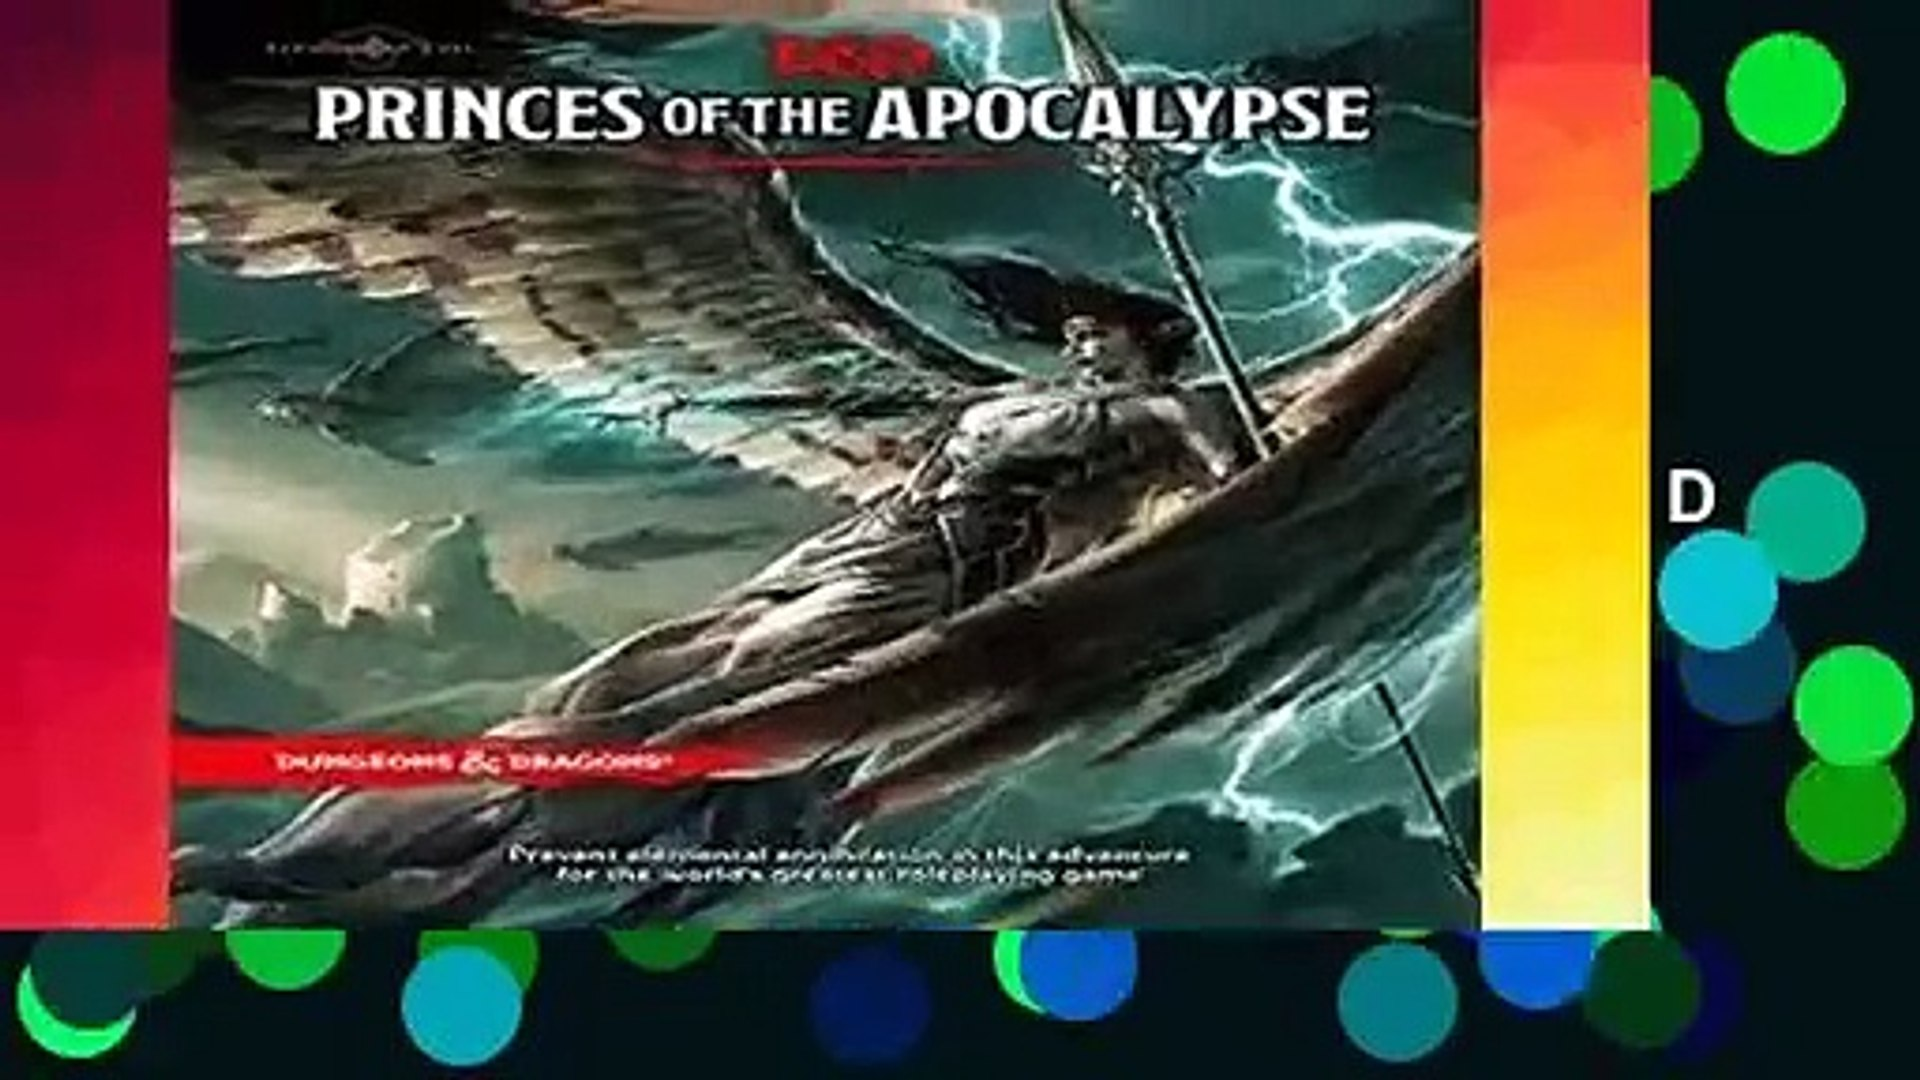 R E A D Princes Of The Apocalypse Dungeons Dragons